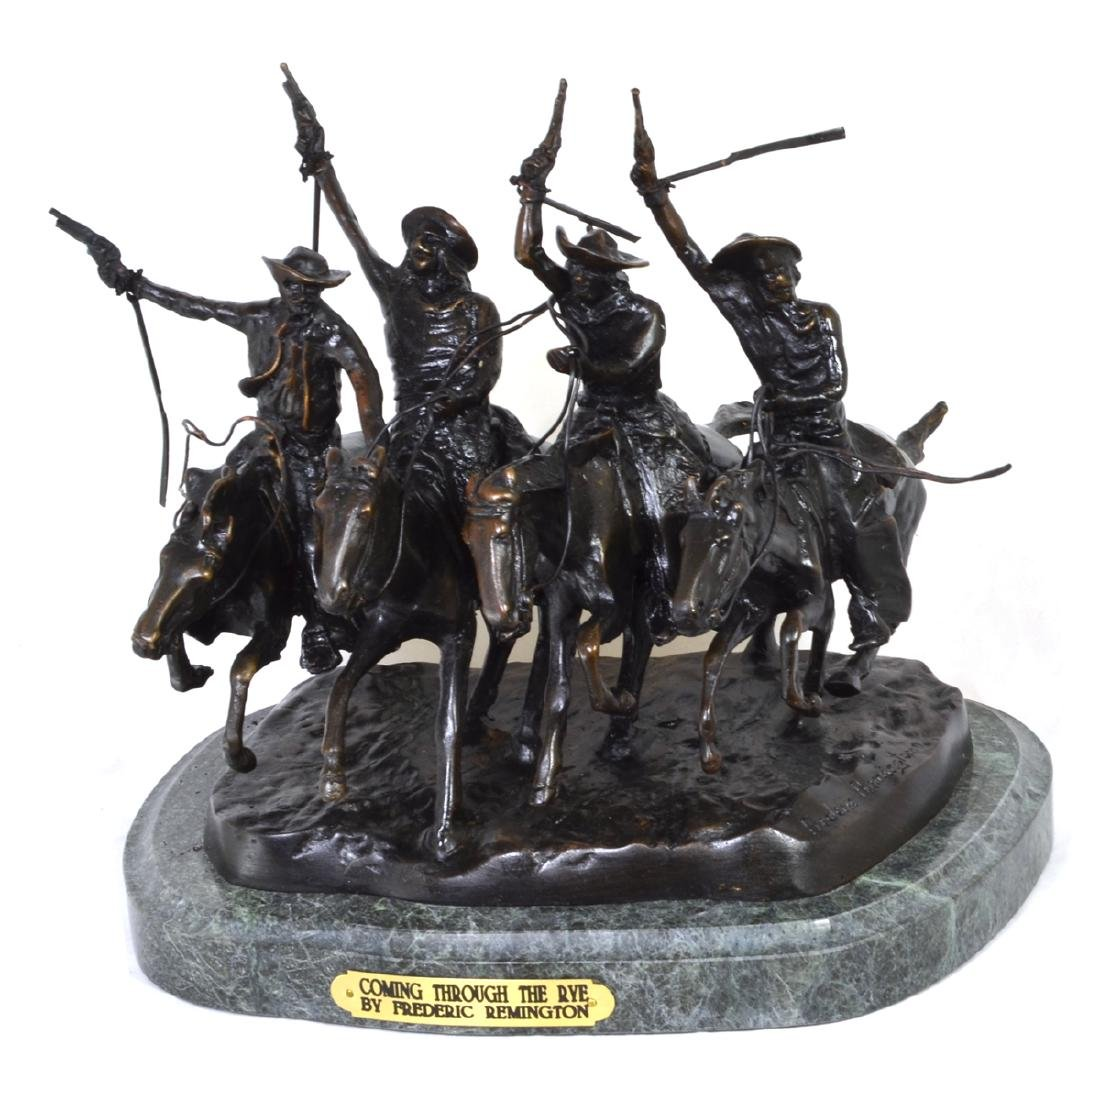 Very Rare Coming Thru The Rye By Frederic Remington-